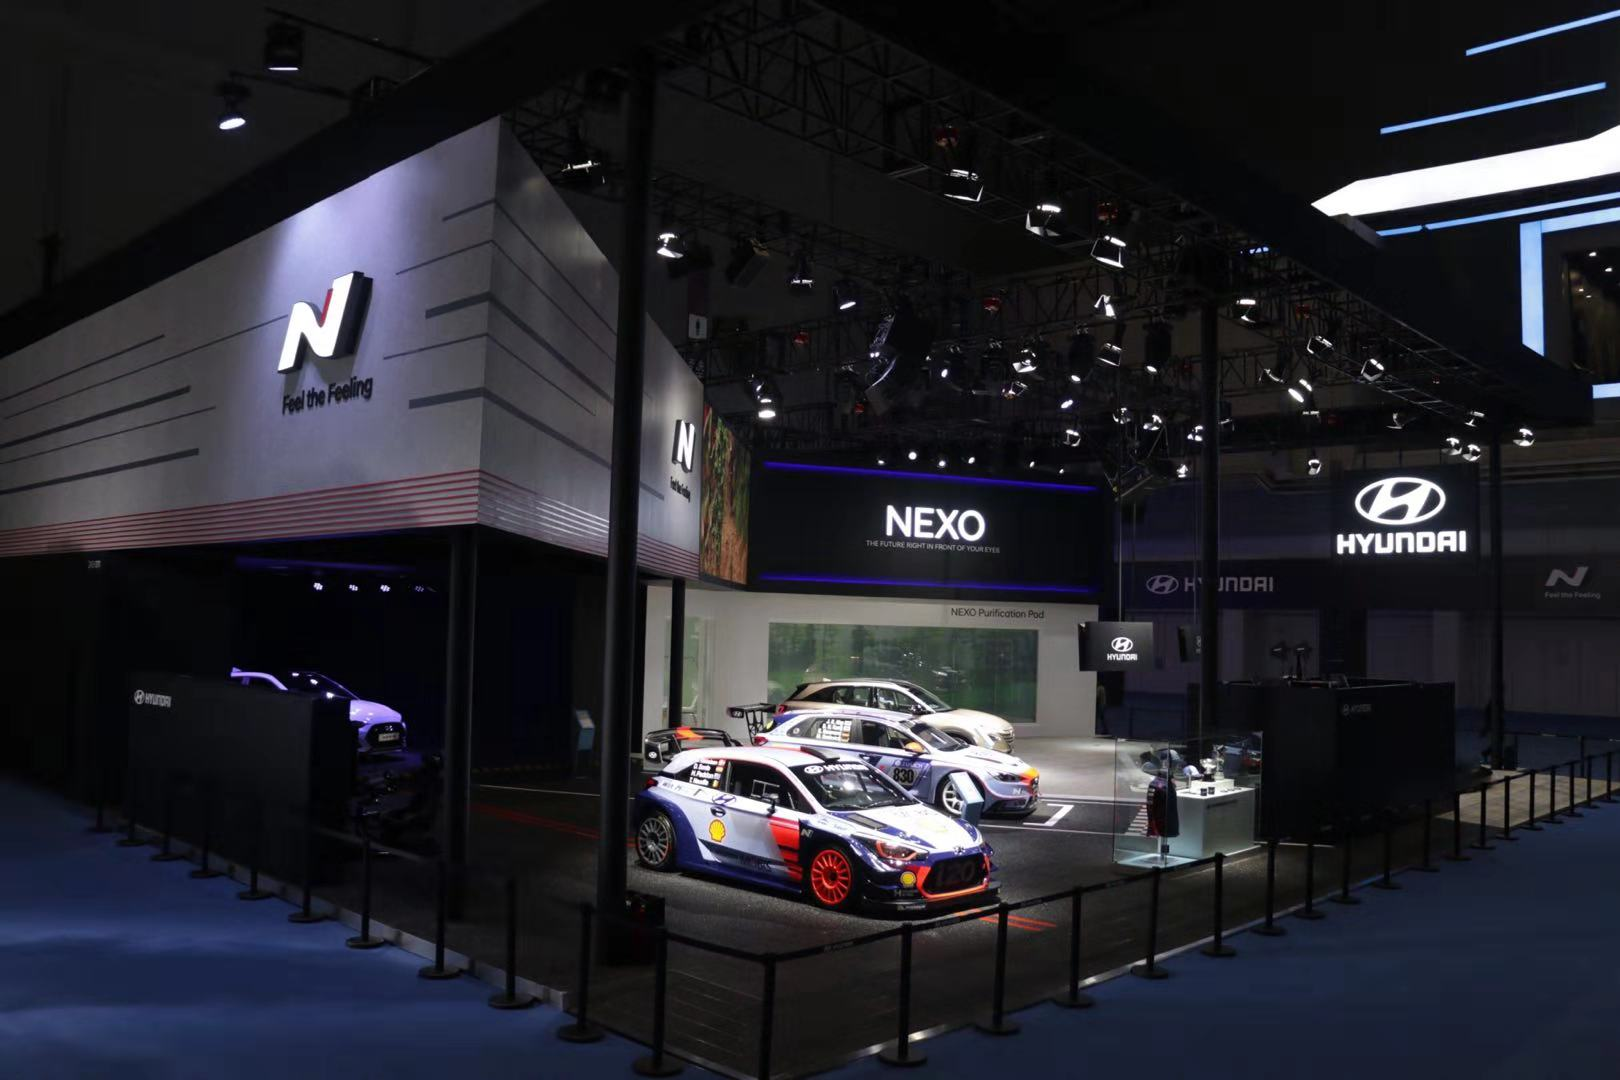 Hyundai presents high performance N brand products and the all-new fuel cell electric vehicle NEXO at the first China International Import Expo, which runs in Shanghai from Nov. 5 to 10. [Photo provided to China.org.cn]